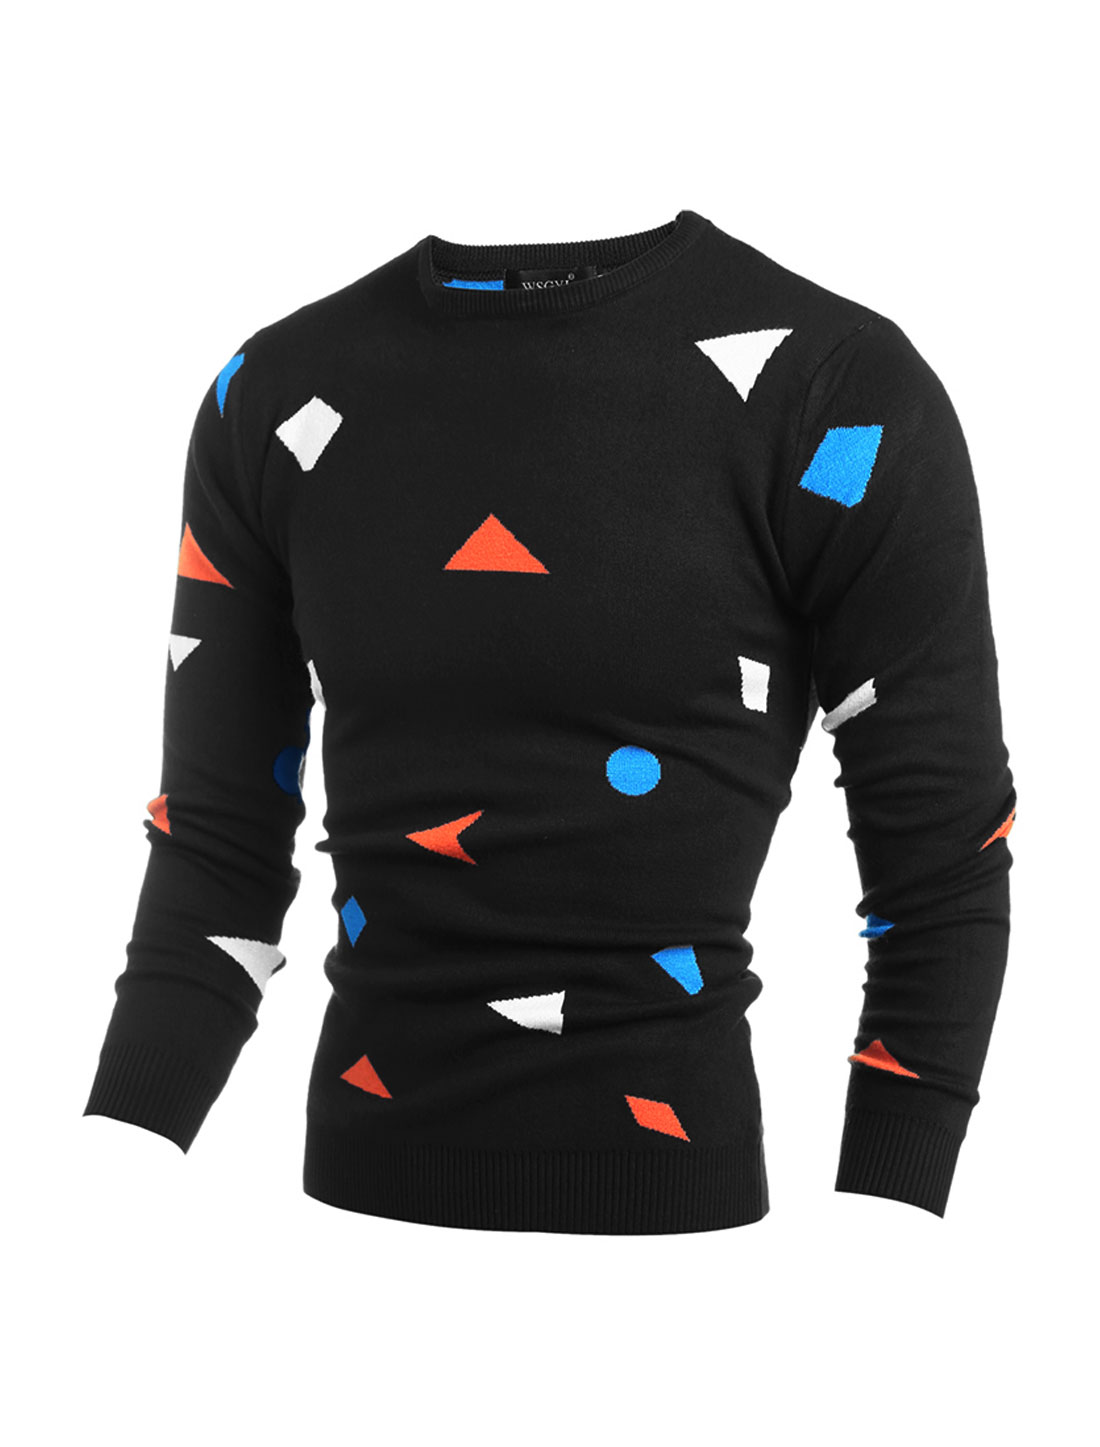 Men Crew Neck Geometric Pullover Knit Shirt Black M